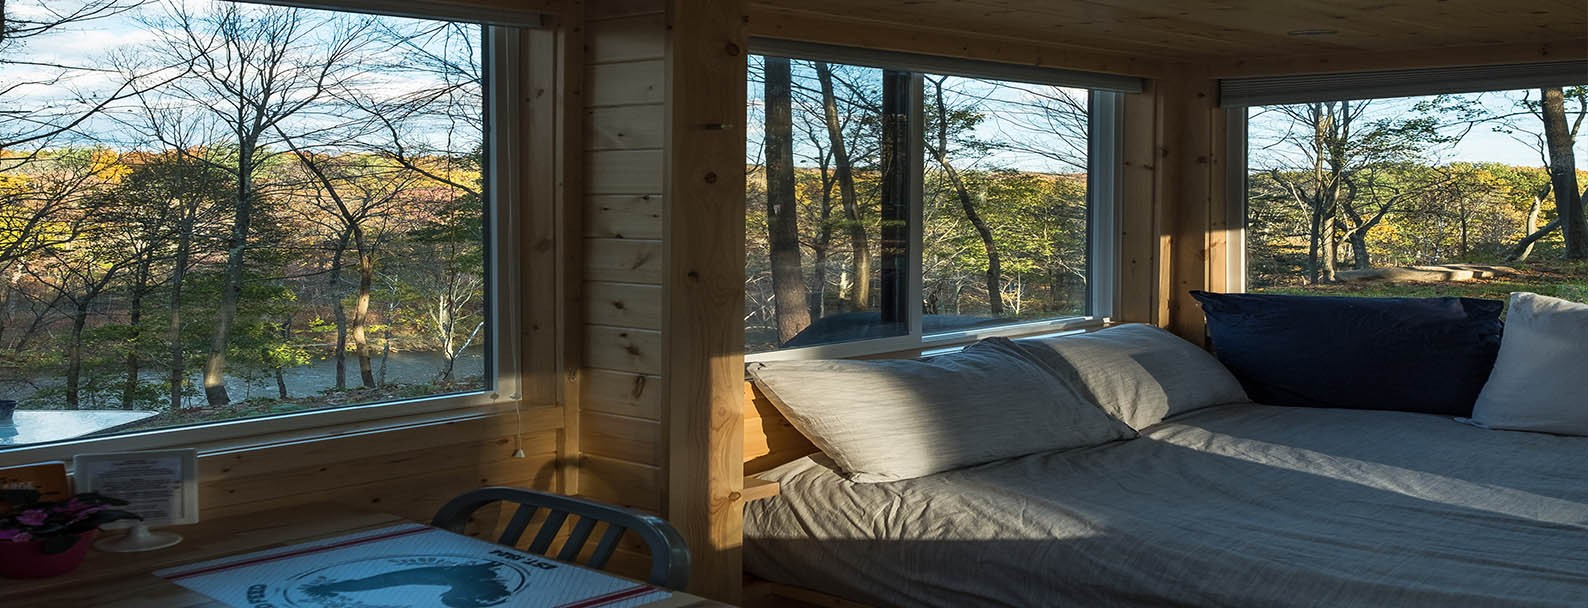 4 Tiny Home Destinations in the Hudson Valley | Lodging | Hudson